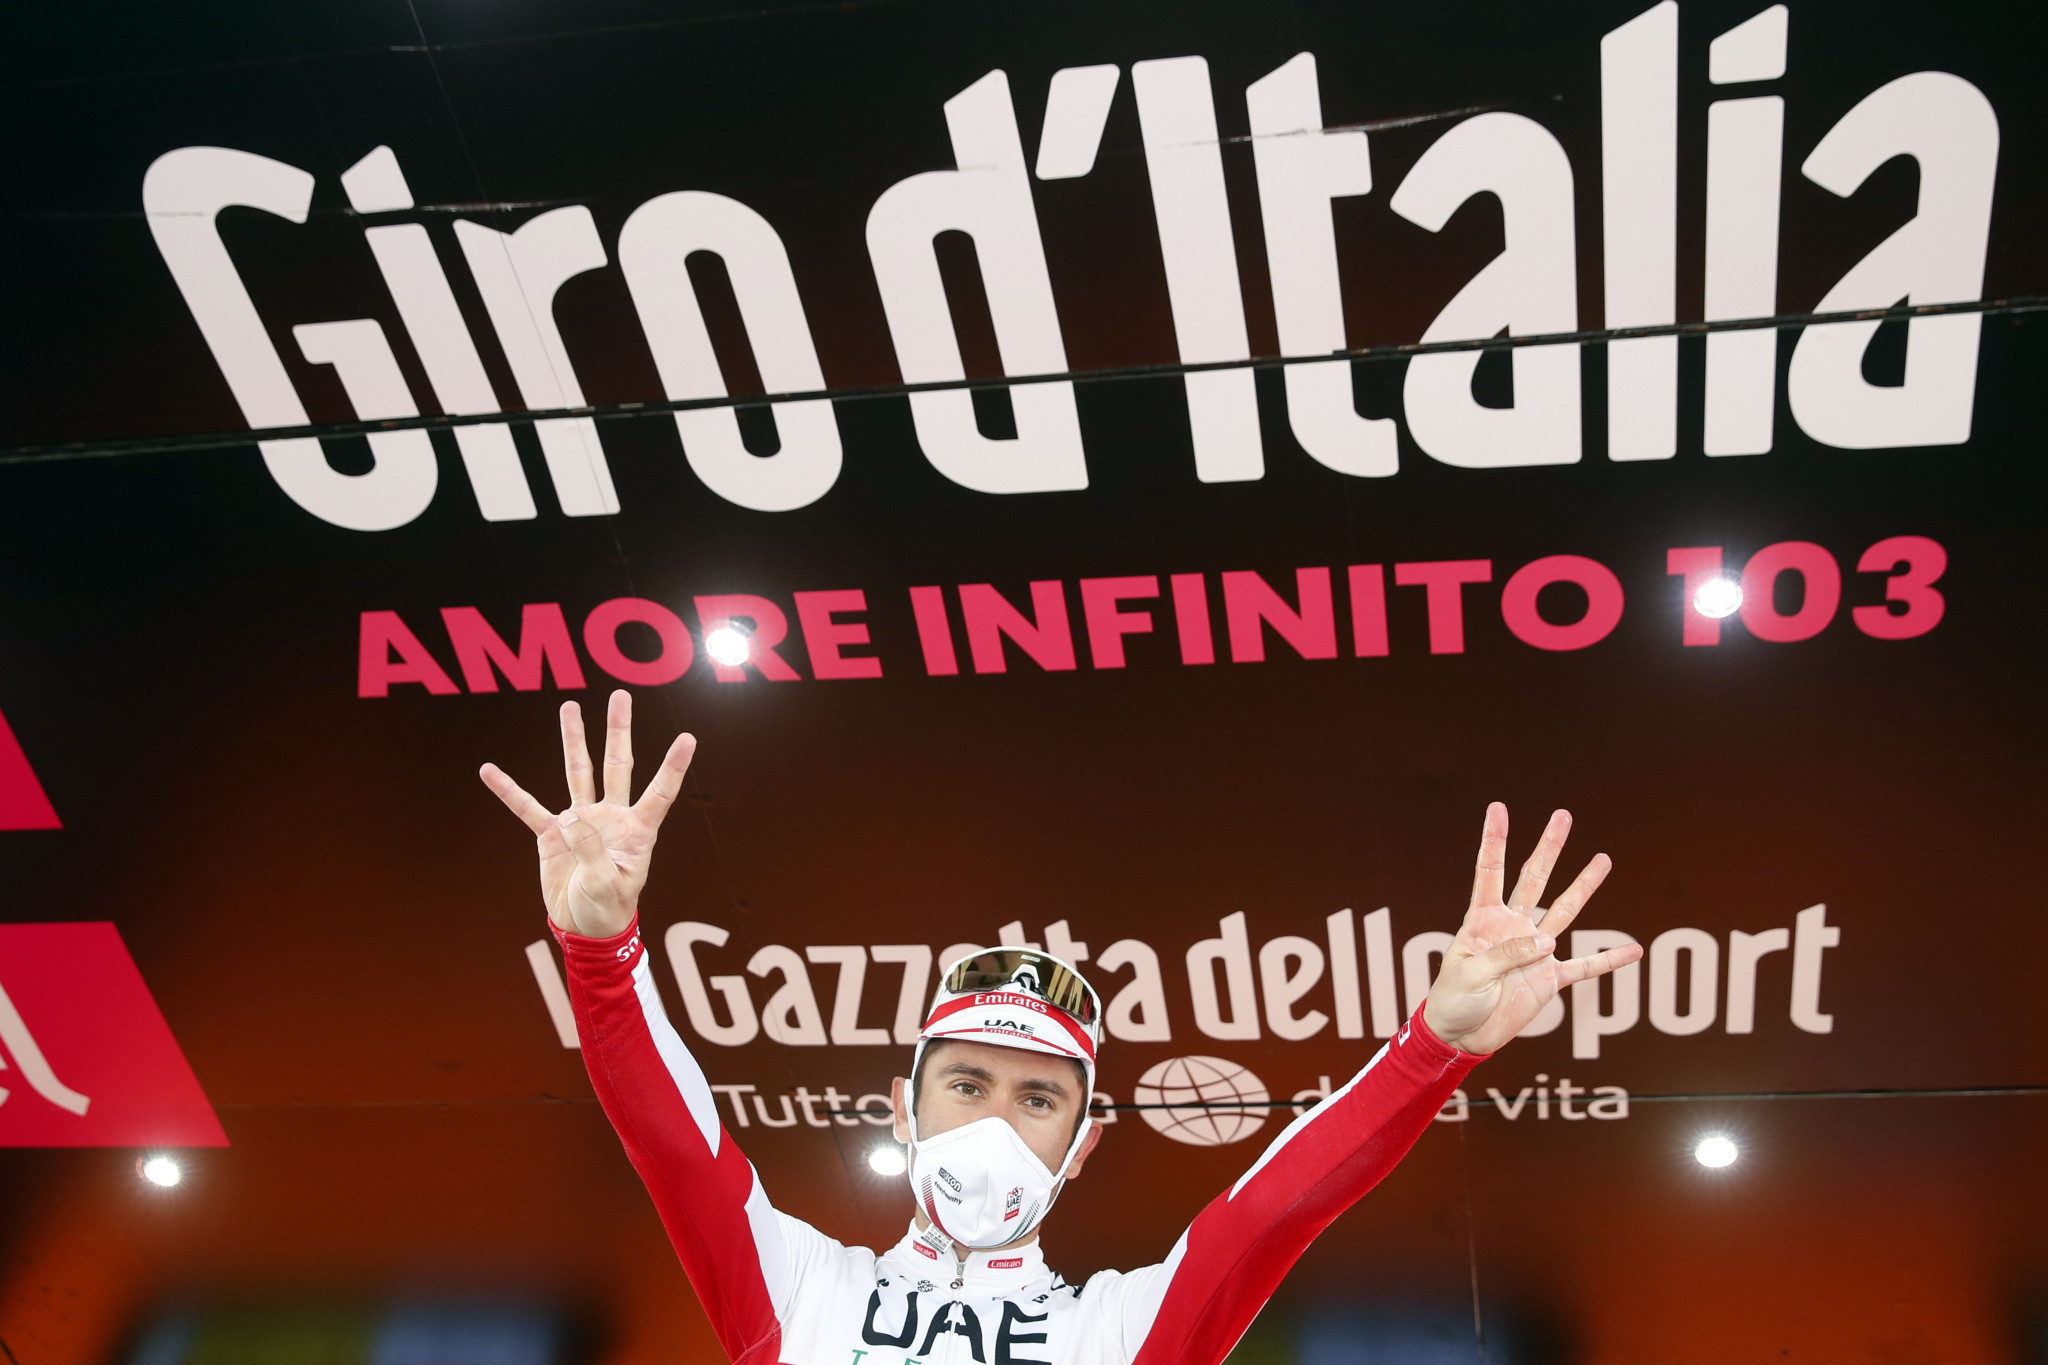 Diego Ulissi has won eight Giro d'Italia stages in his career